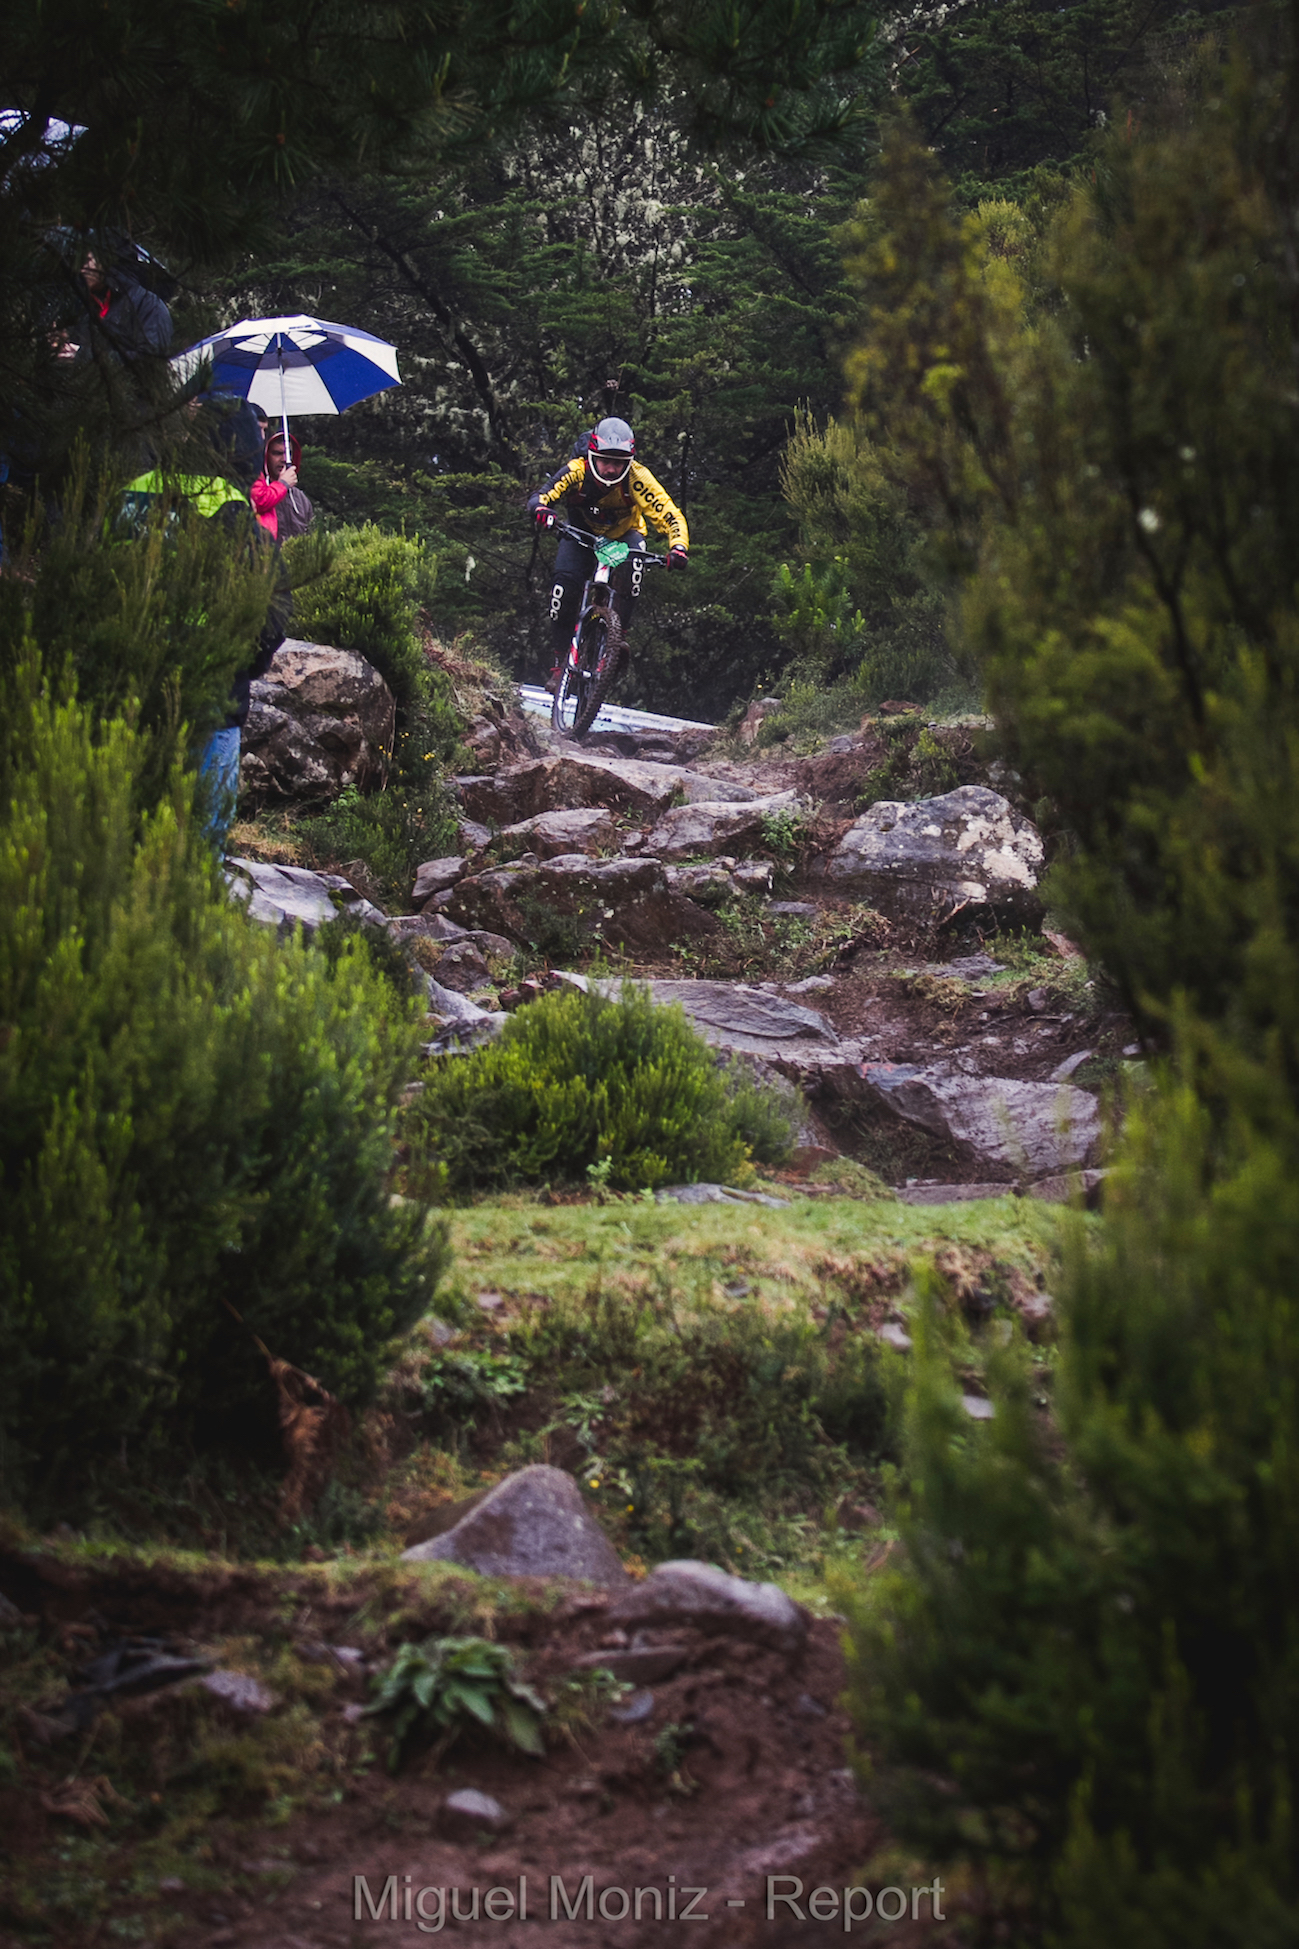 Imagine you on a race, everyone's looking, it's raining and you wanna look cool, suddenly this trail section comes up..